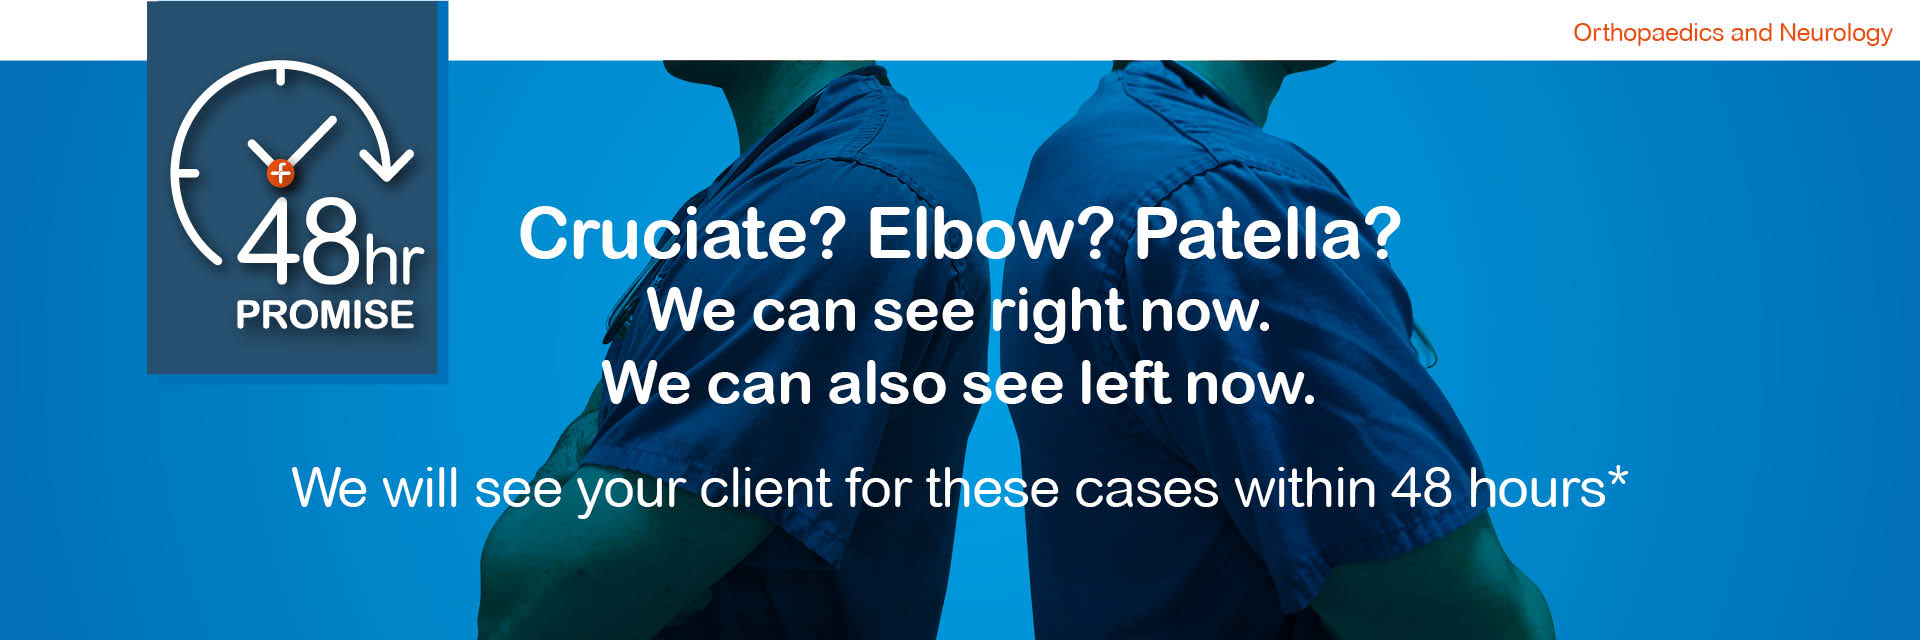 48 hour promise - cruciate, elbow, patella